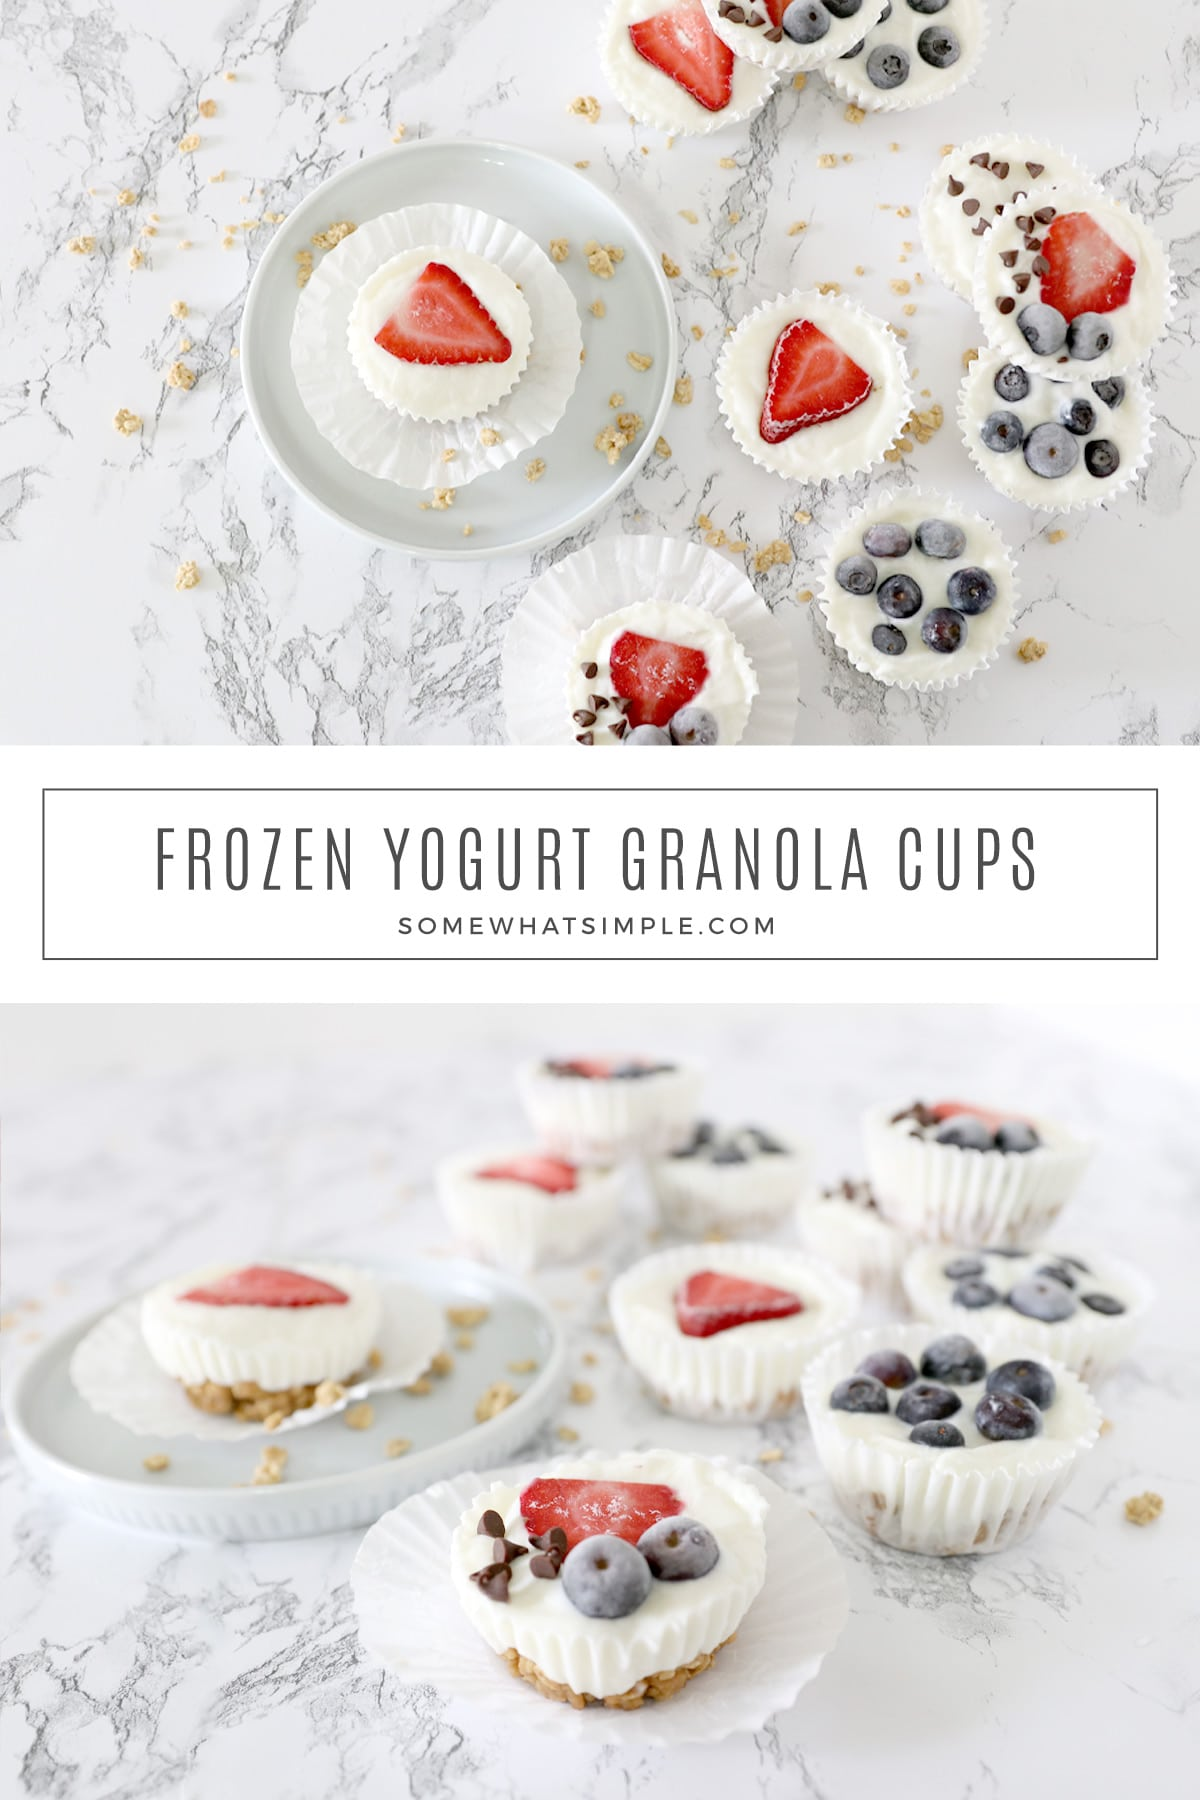 Frozen Yogurt Granola Cups are pretty to look at easy to make! Made with just 5 ingredients, these tasty little treats are a healthy breakfast, snack, or simple dessert! via @somewhatsimple